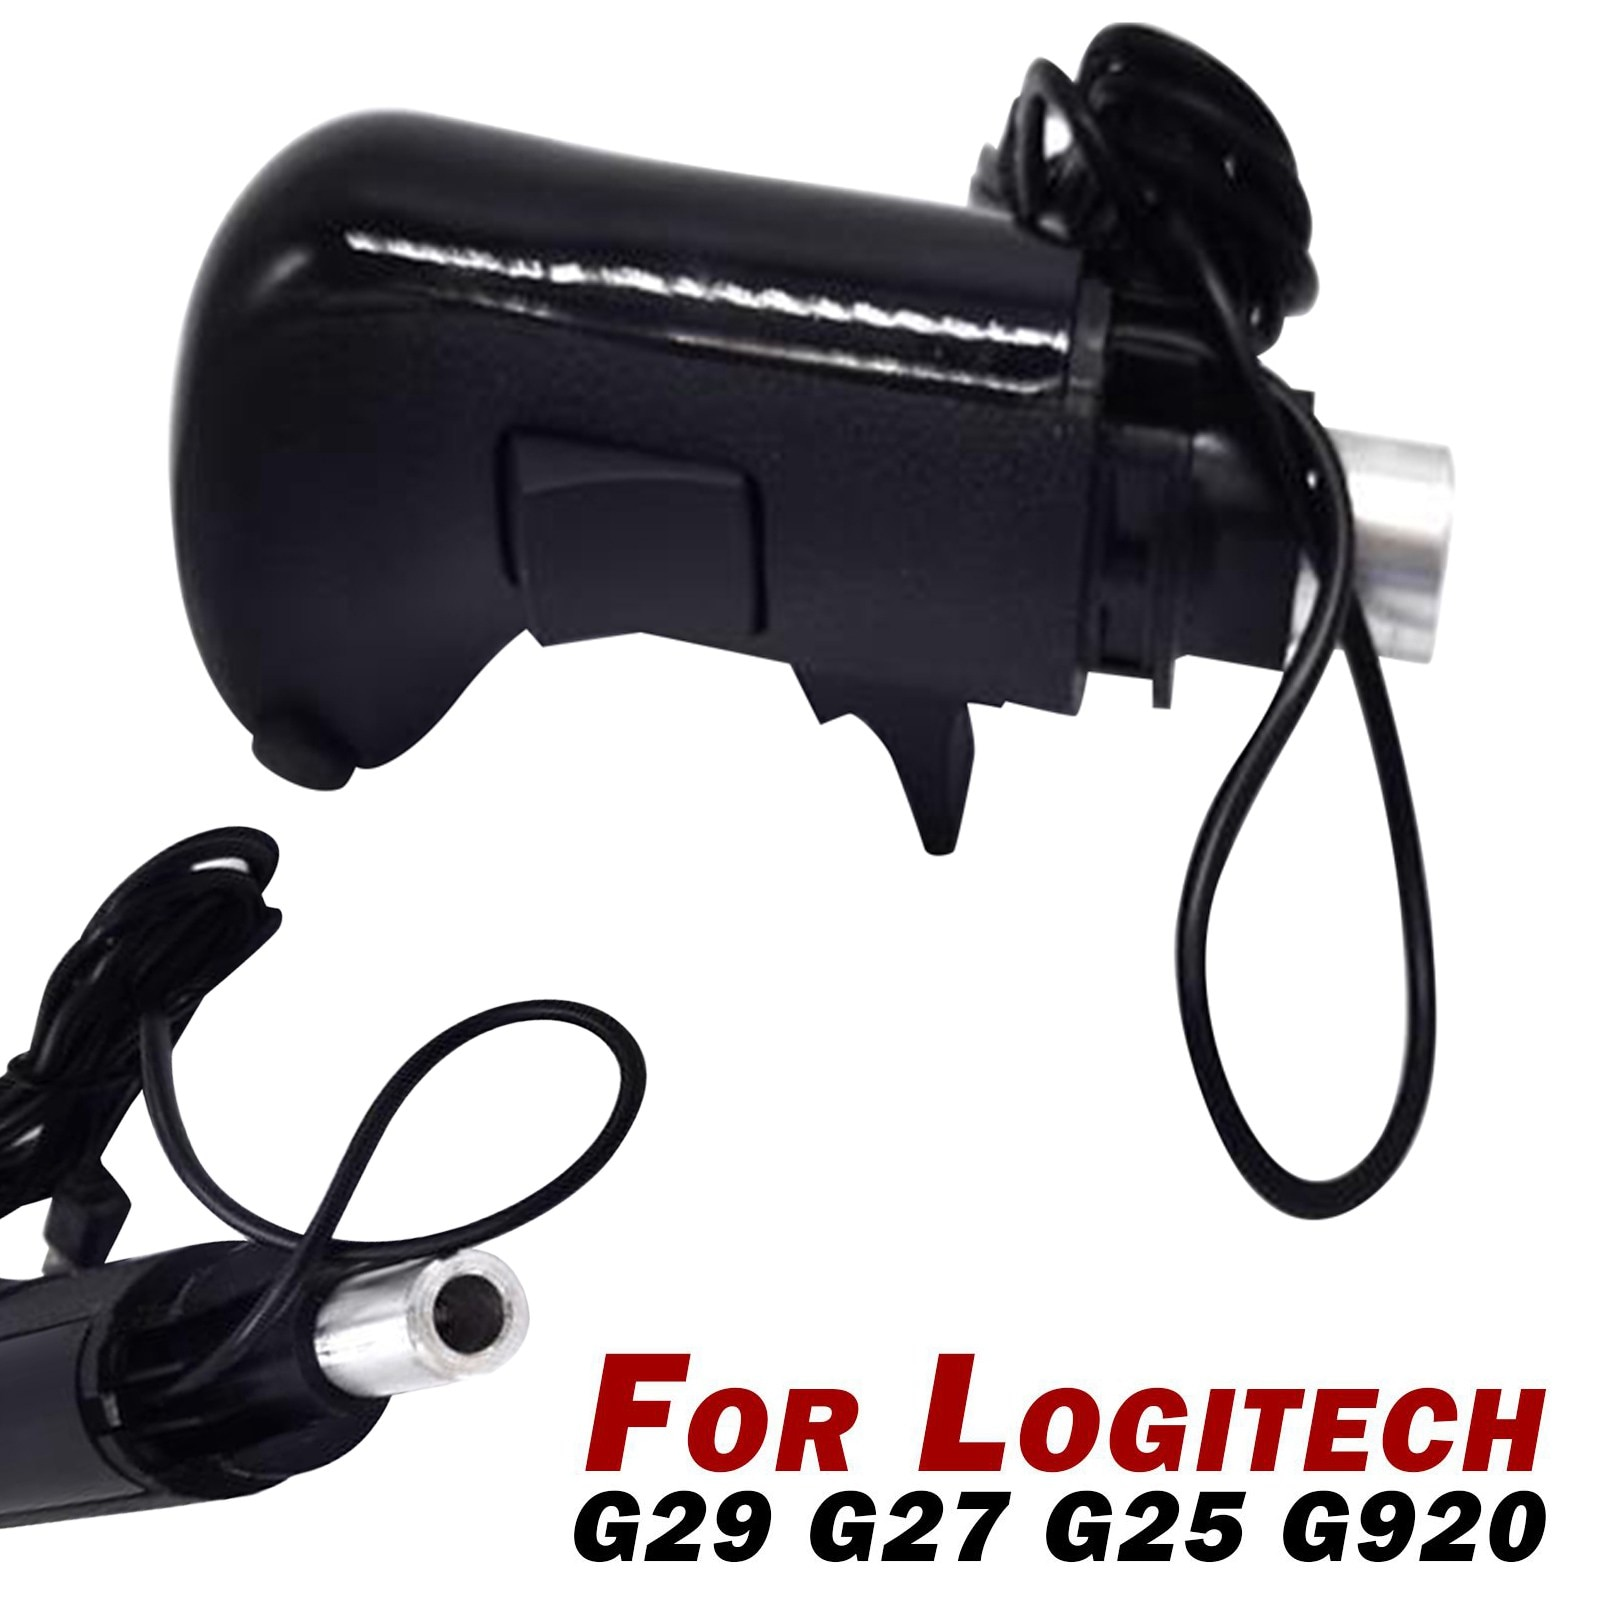 For ATS ETS2 Logitech G29 G27 G25 G920 H THRUSTMASTER TH8A USB Gearshift Knob High and low gear